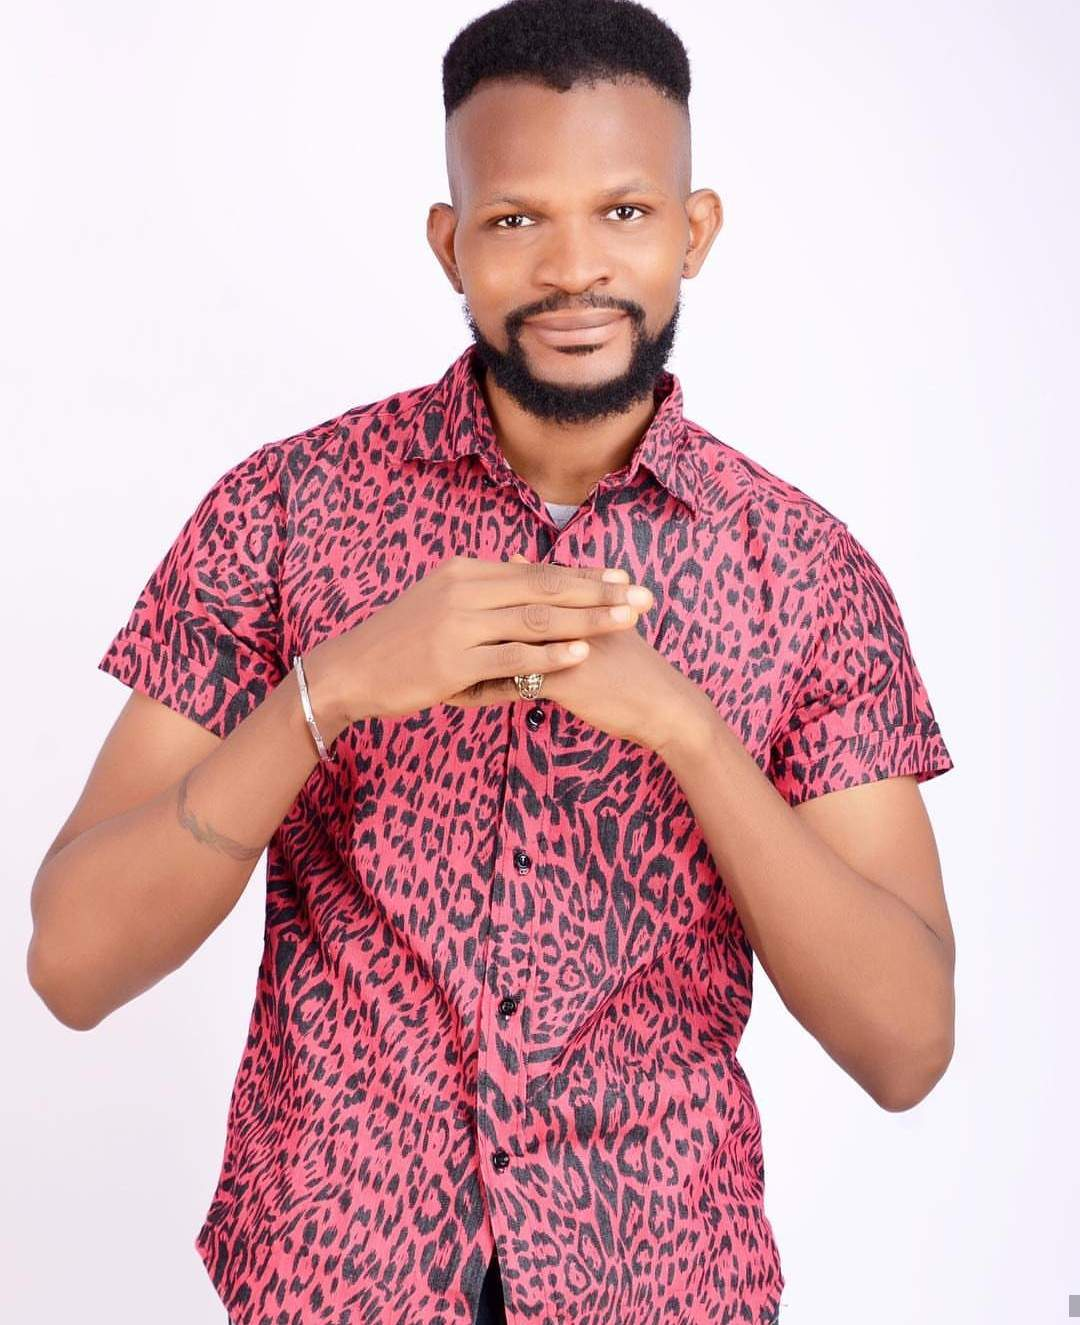 Nollywood is flooded with fake foreign accent, this is a national disgrace - Uche Maduagwu